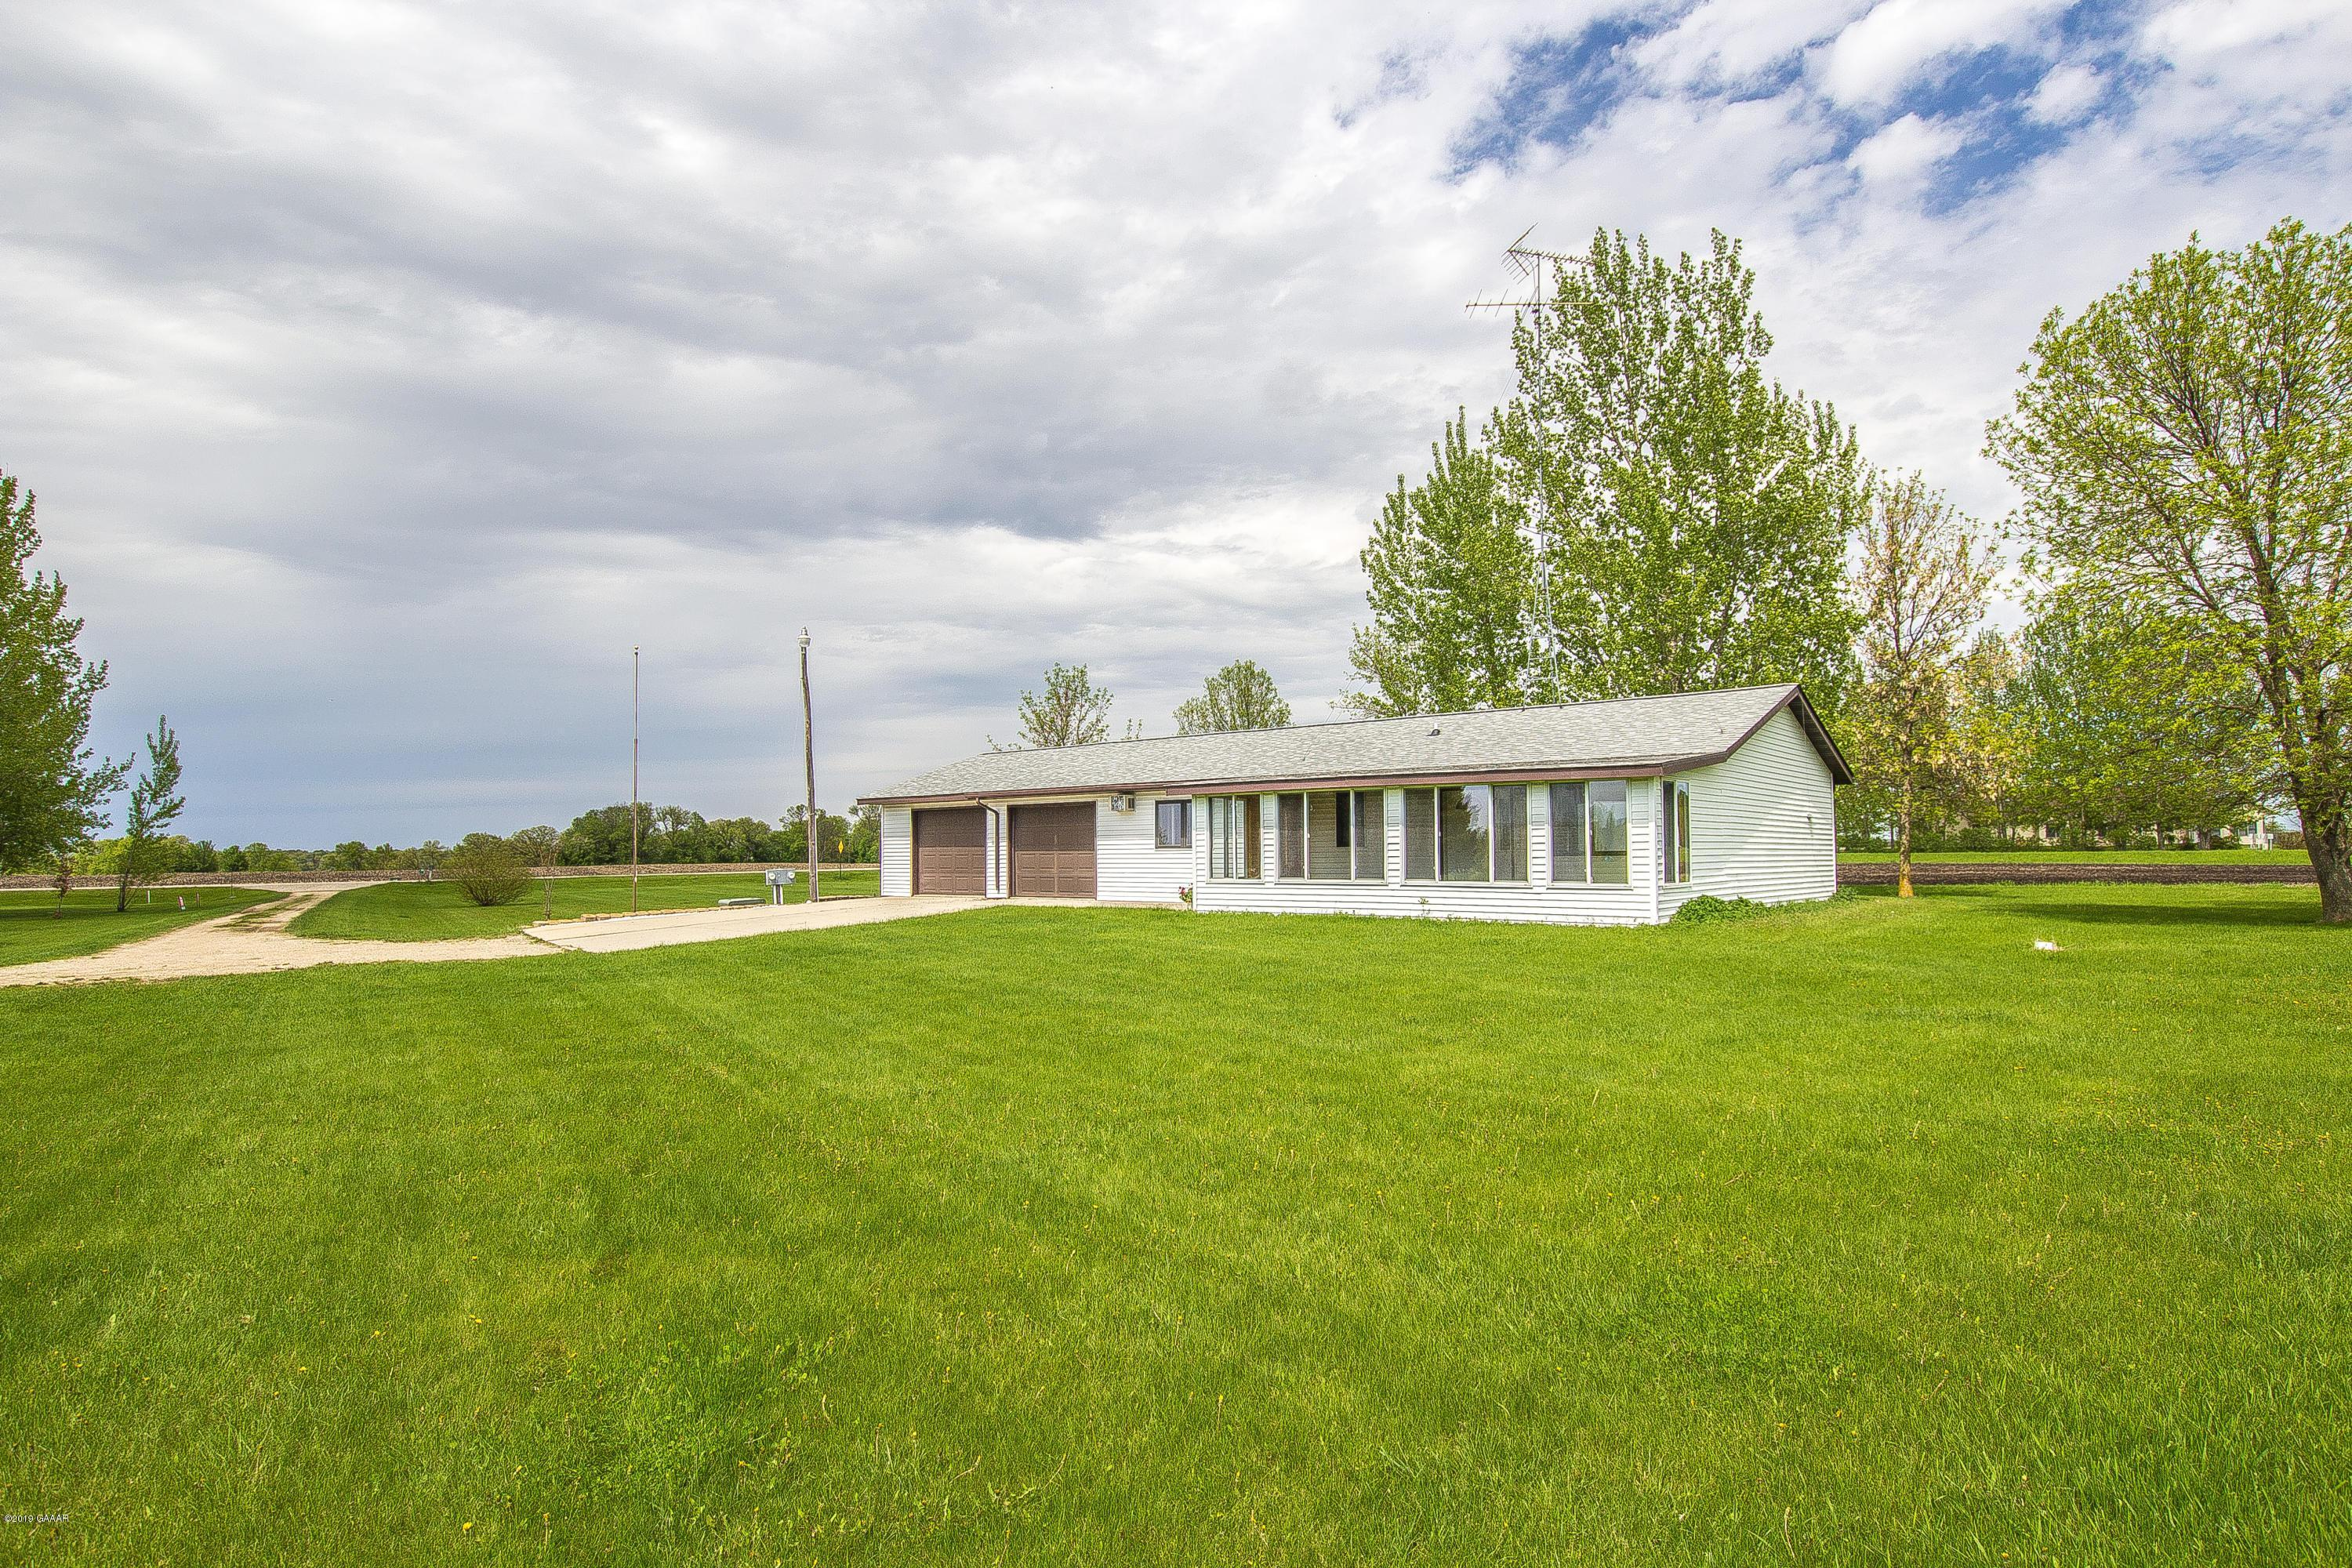 , Ashby, MN 56309 - Ashby, MN real estate listing